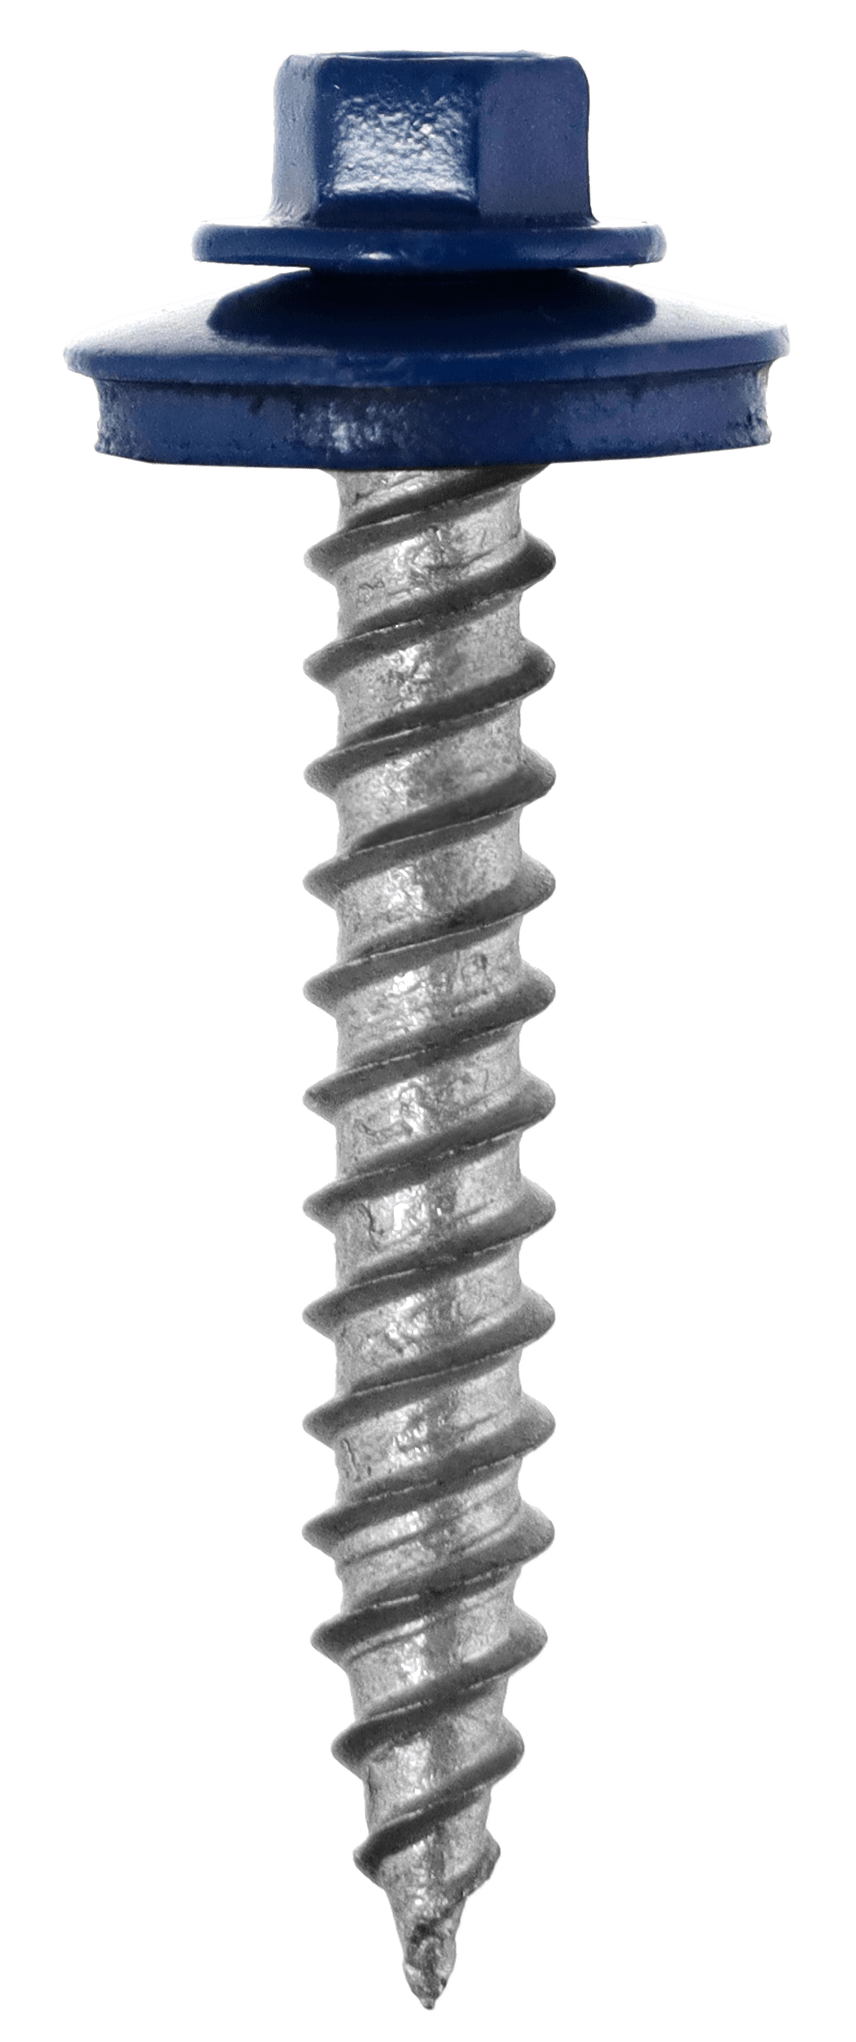 Regrip #12 roofing screw